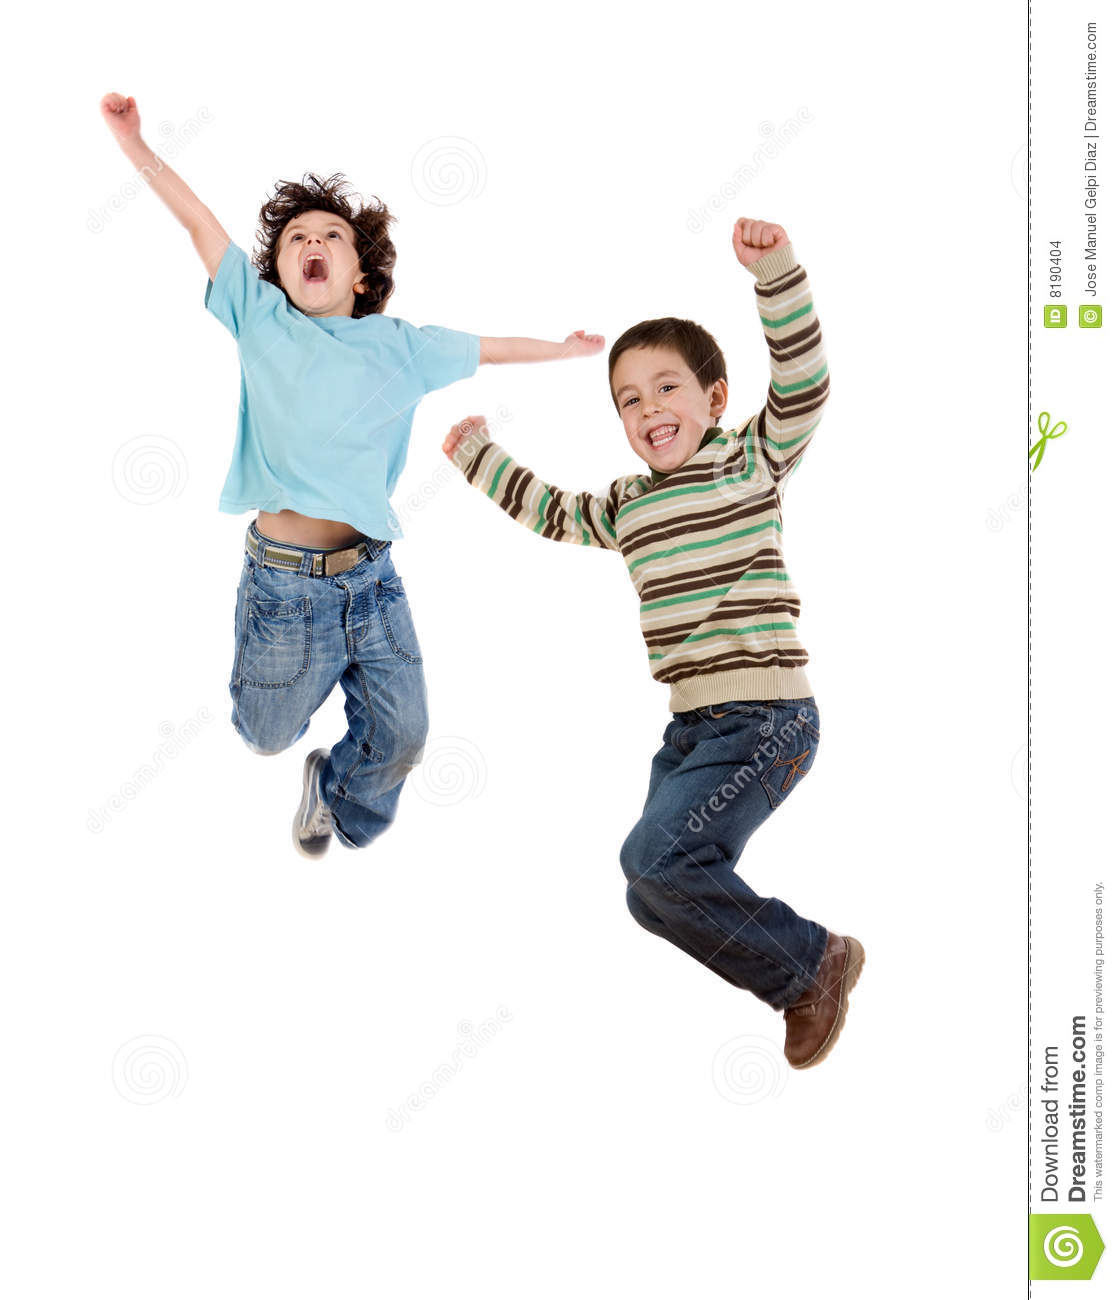 two happy children jumping at once stock images image 8190404. Black Bedroom Furniture Sets. Home Design Ideas